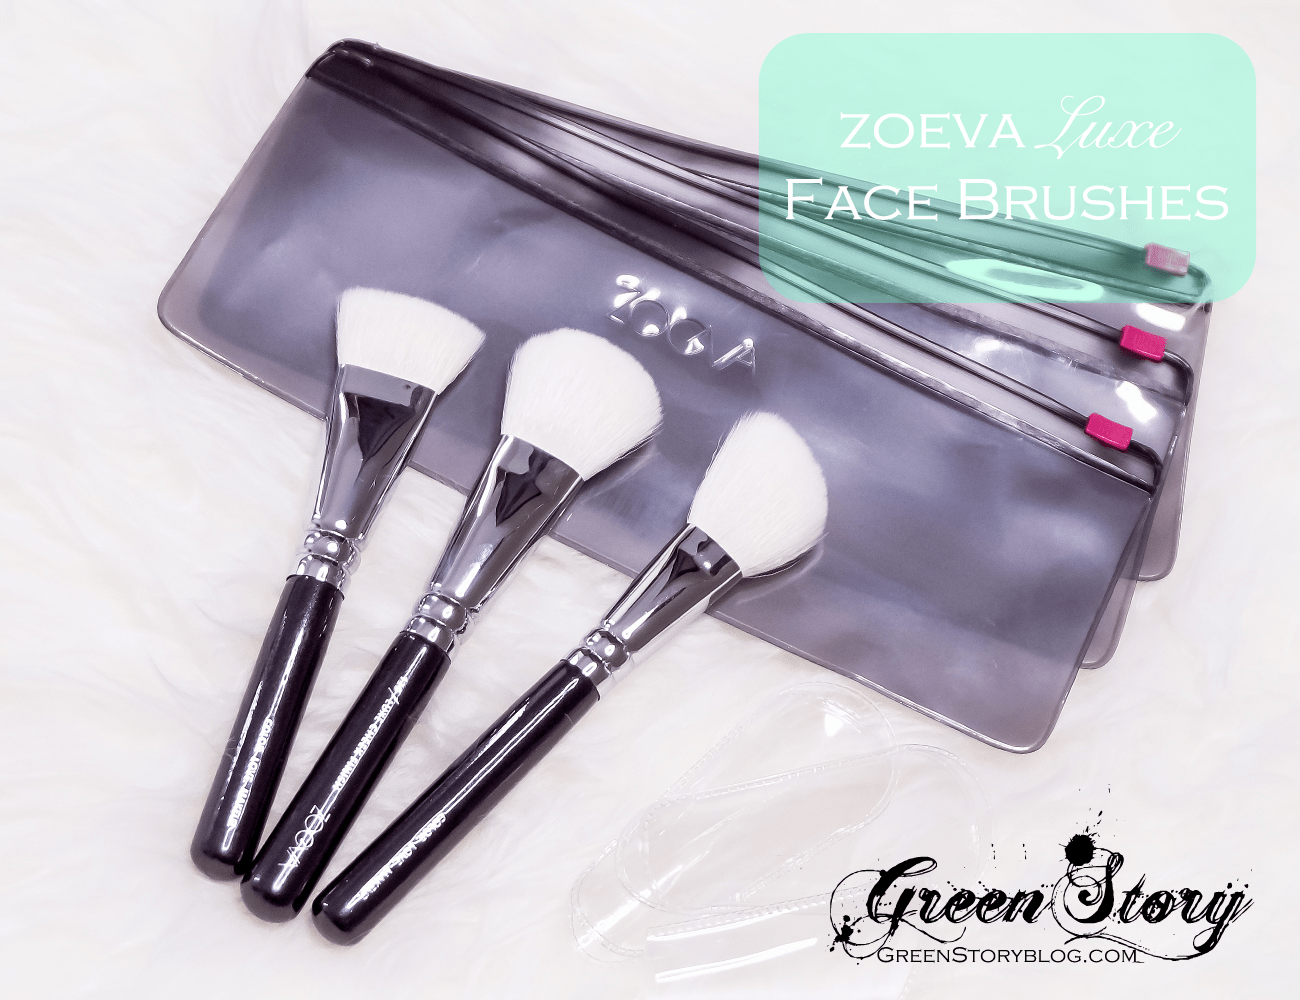 Zoeva luxe face brushes